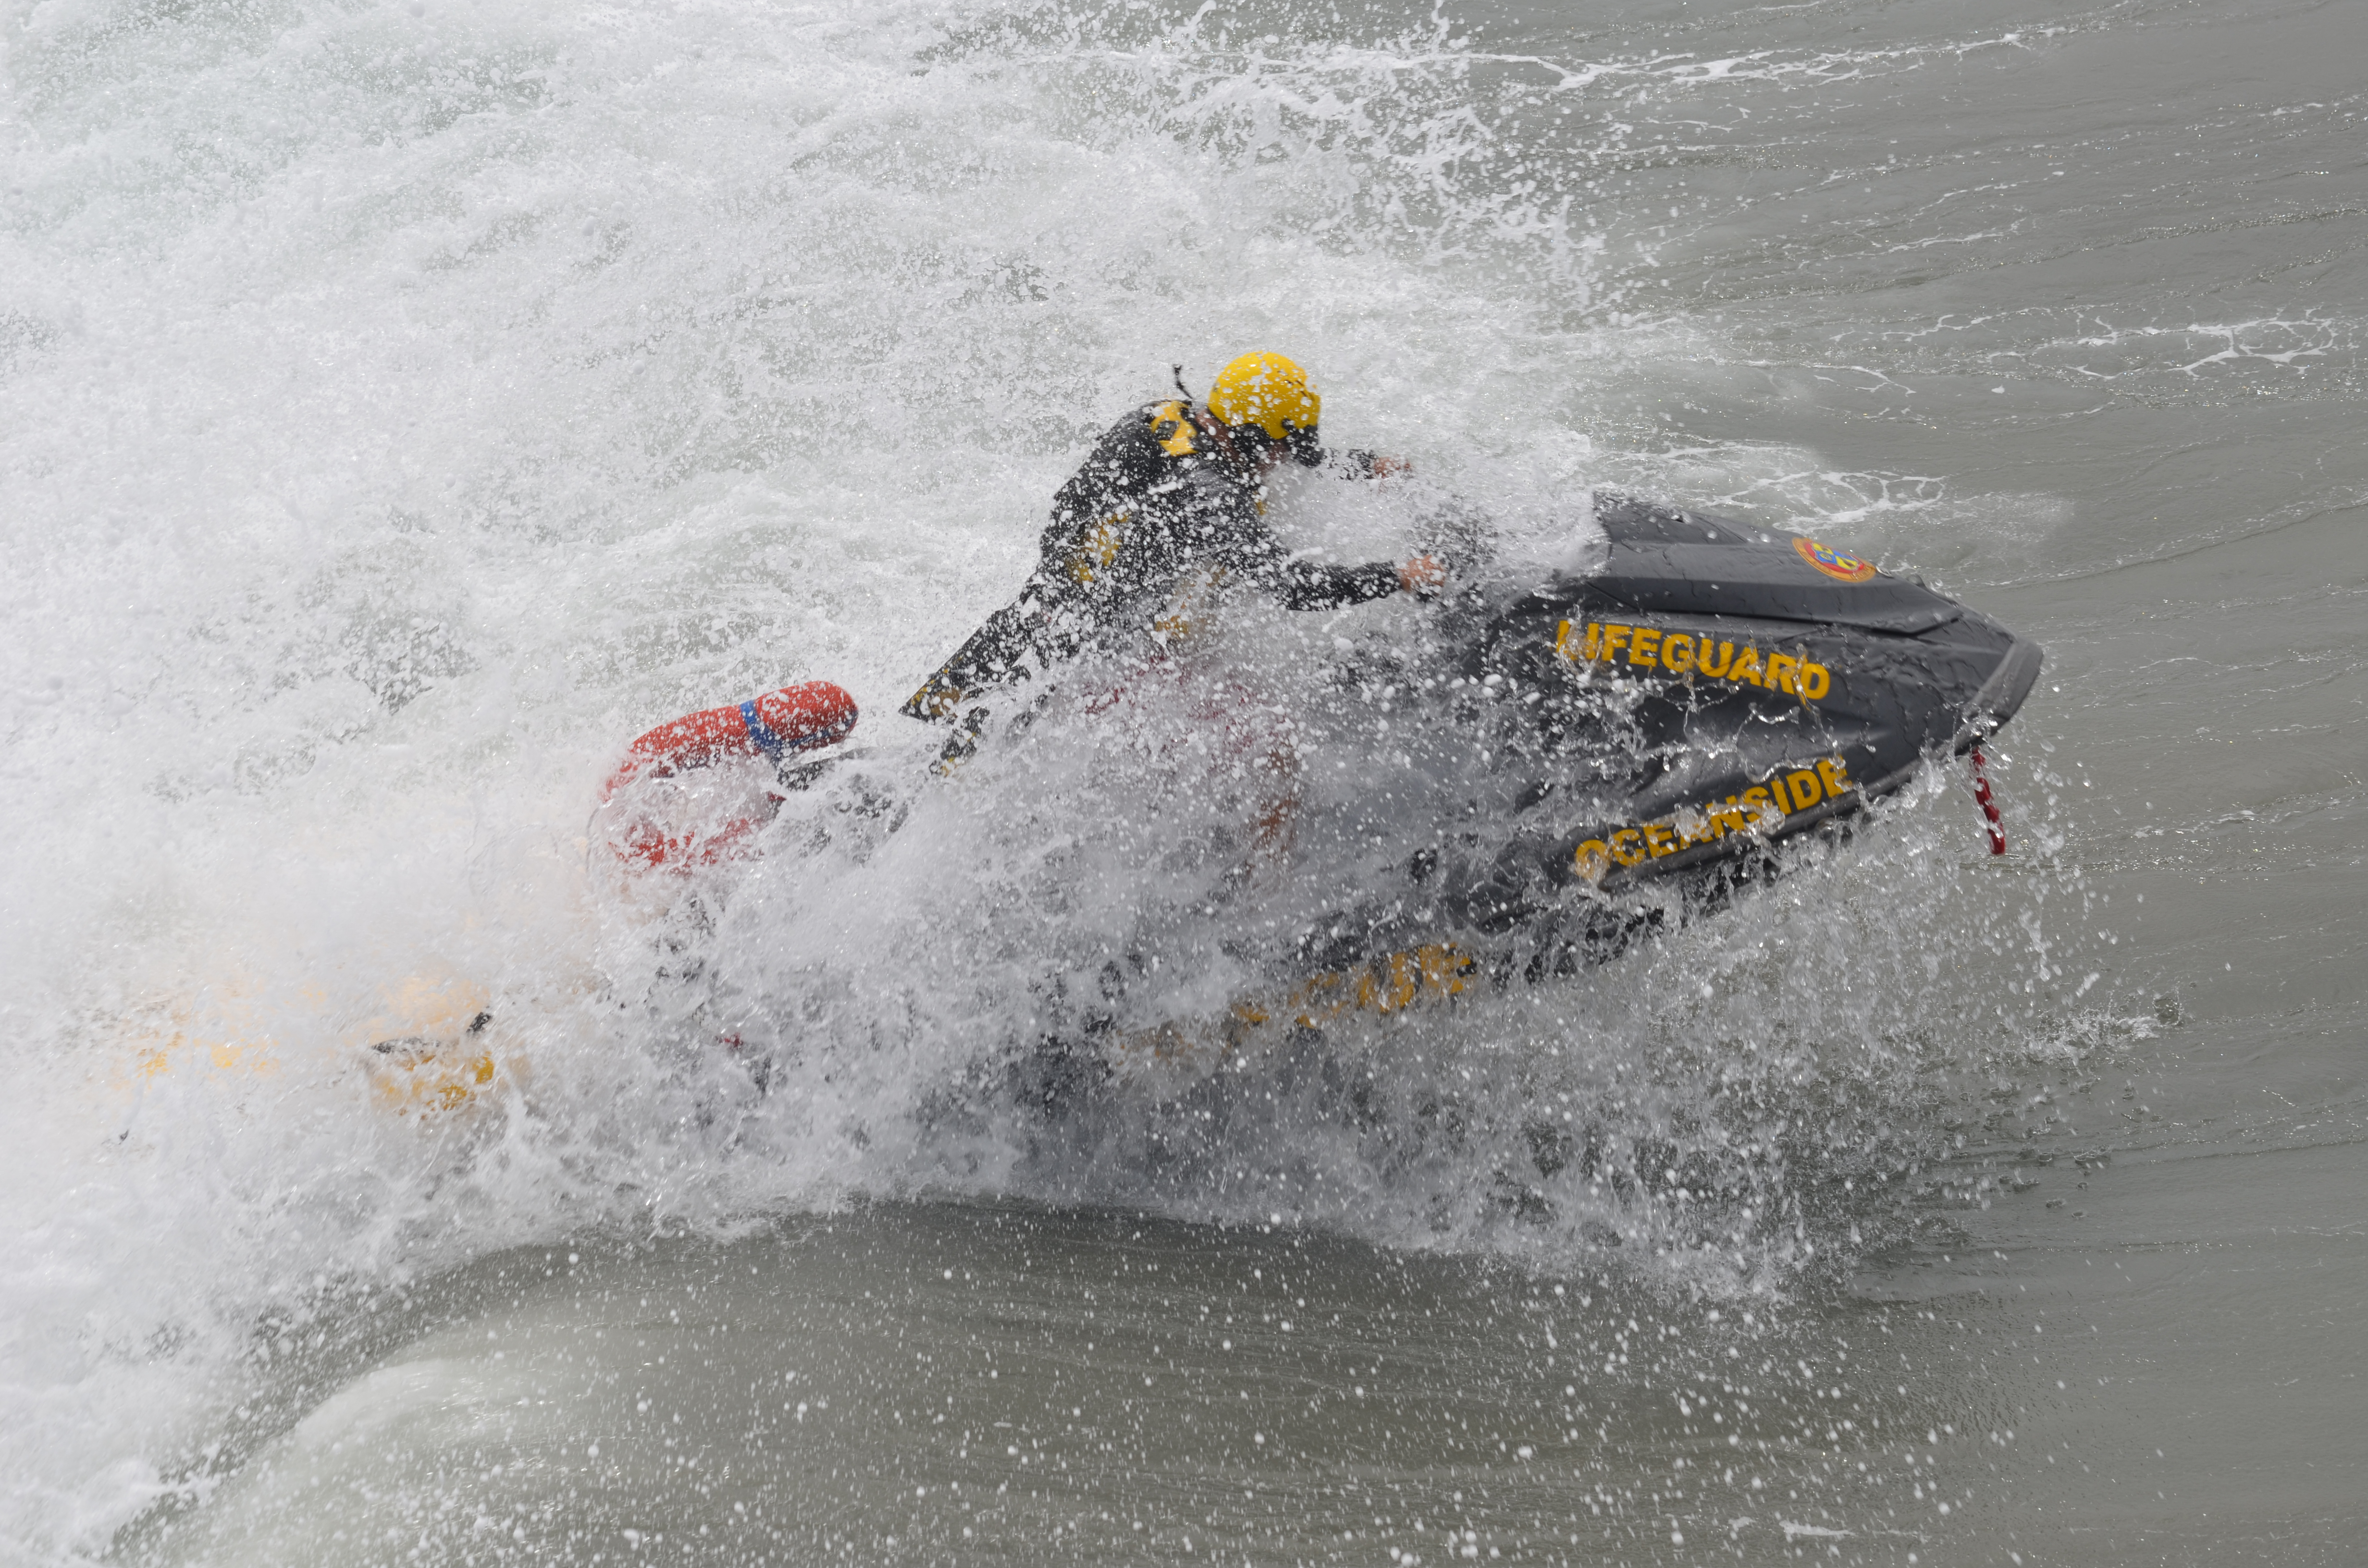 One of Oceanside's lifeguards powers through a wave on a jet ski on his way out to keep an eye on surfers and swimmers in the area. Photo by Tony Cagala